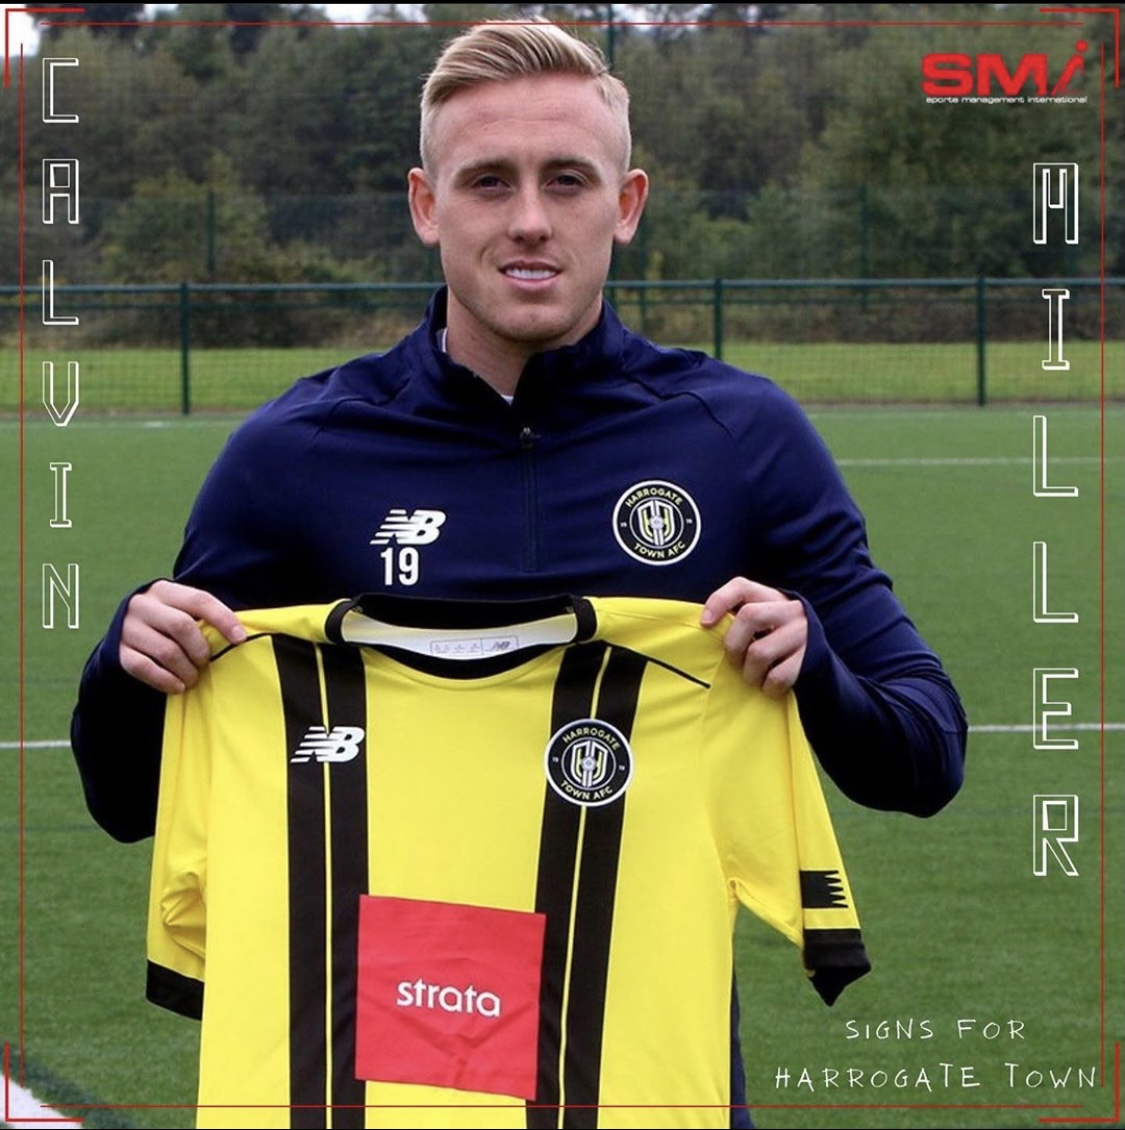 Calvin Miller signs for Harrogate Town